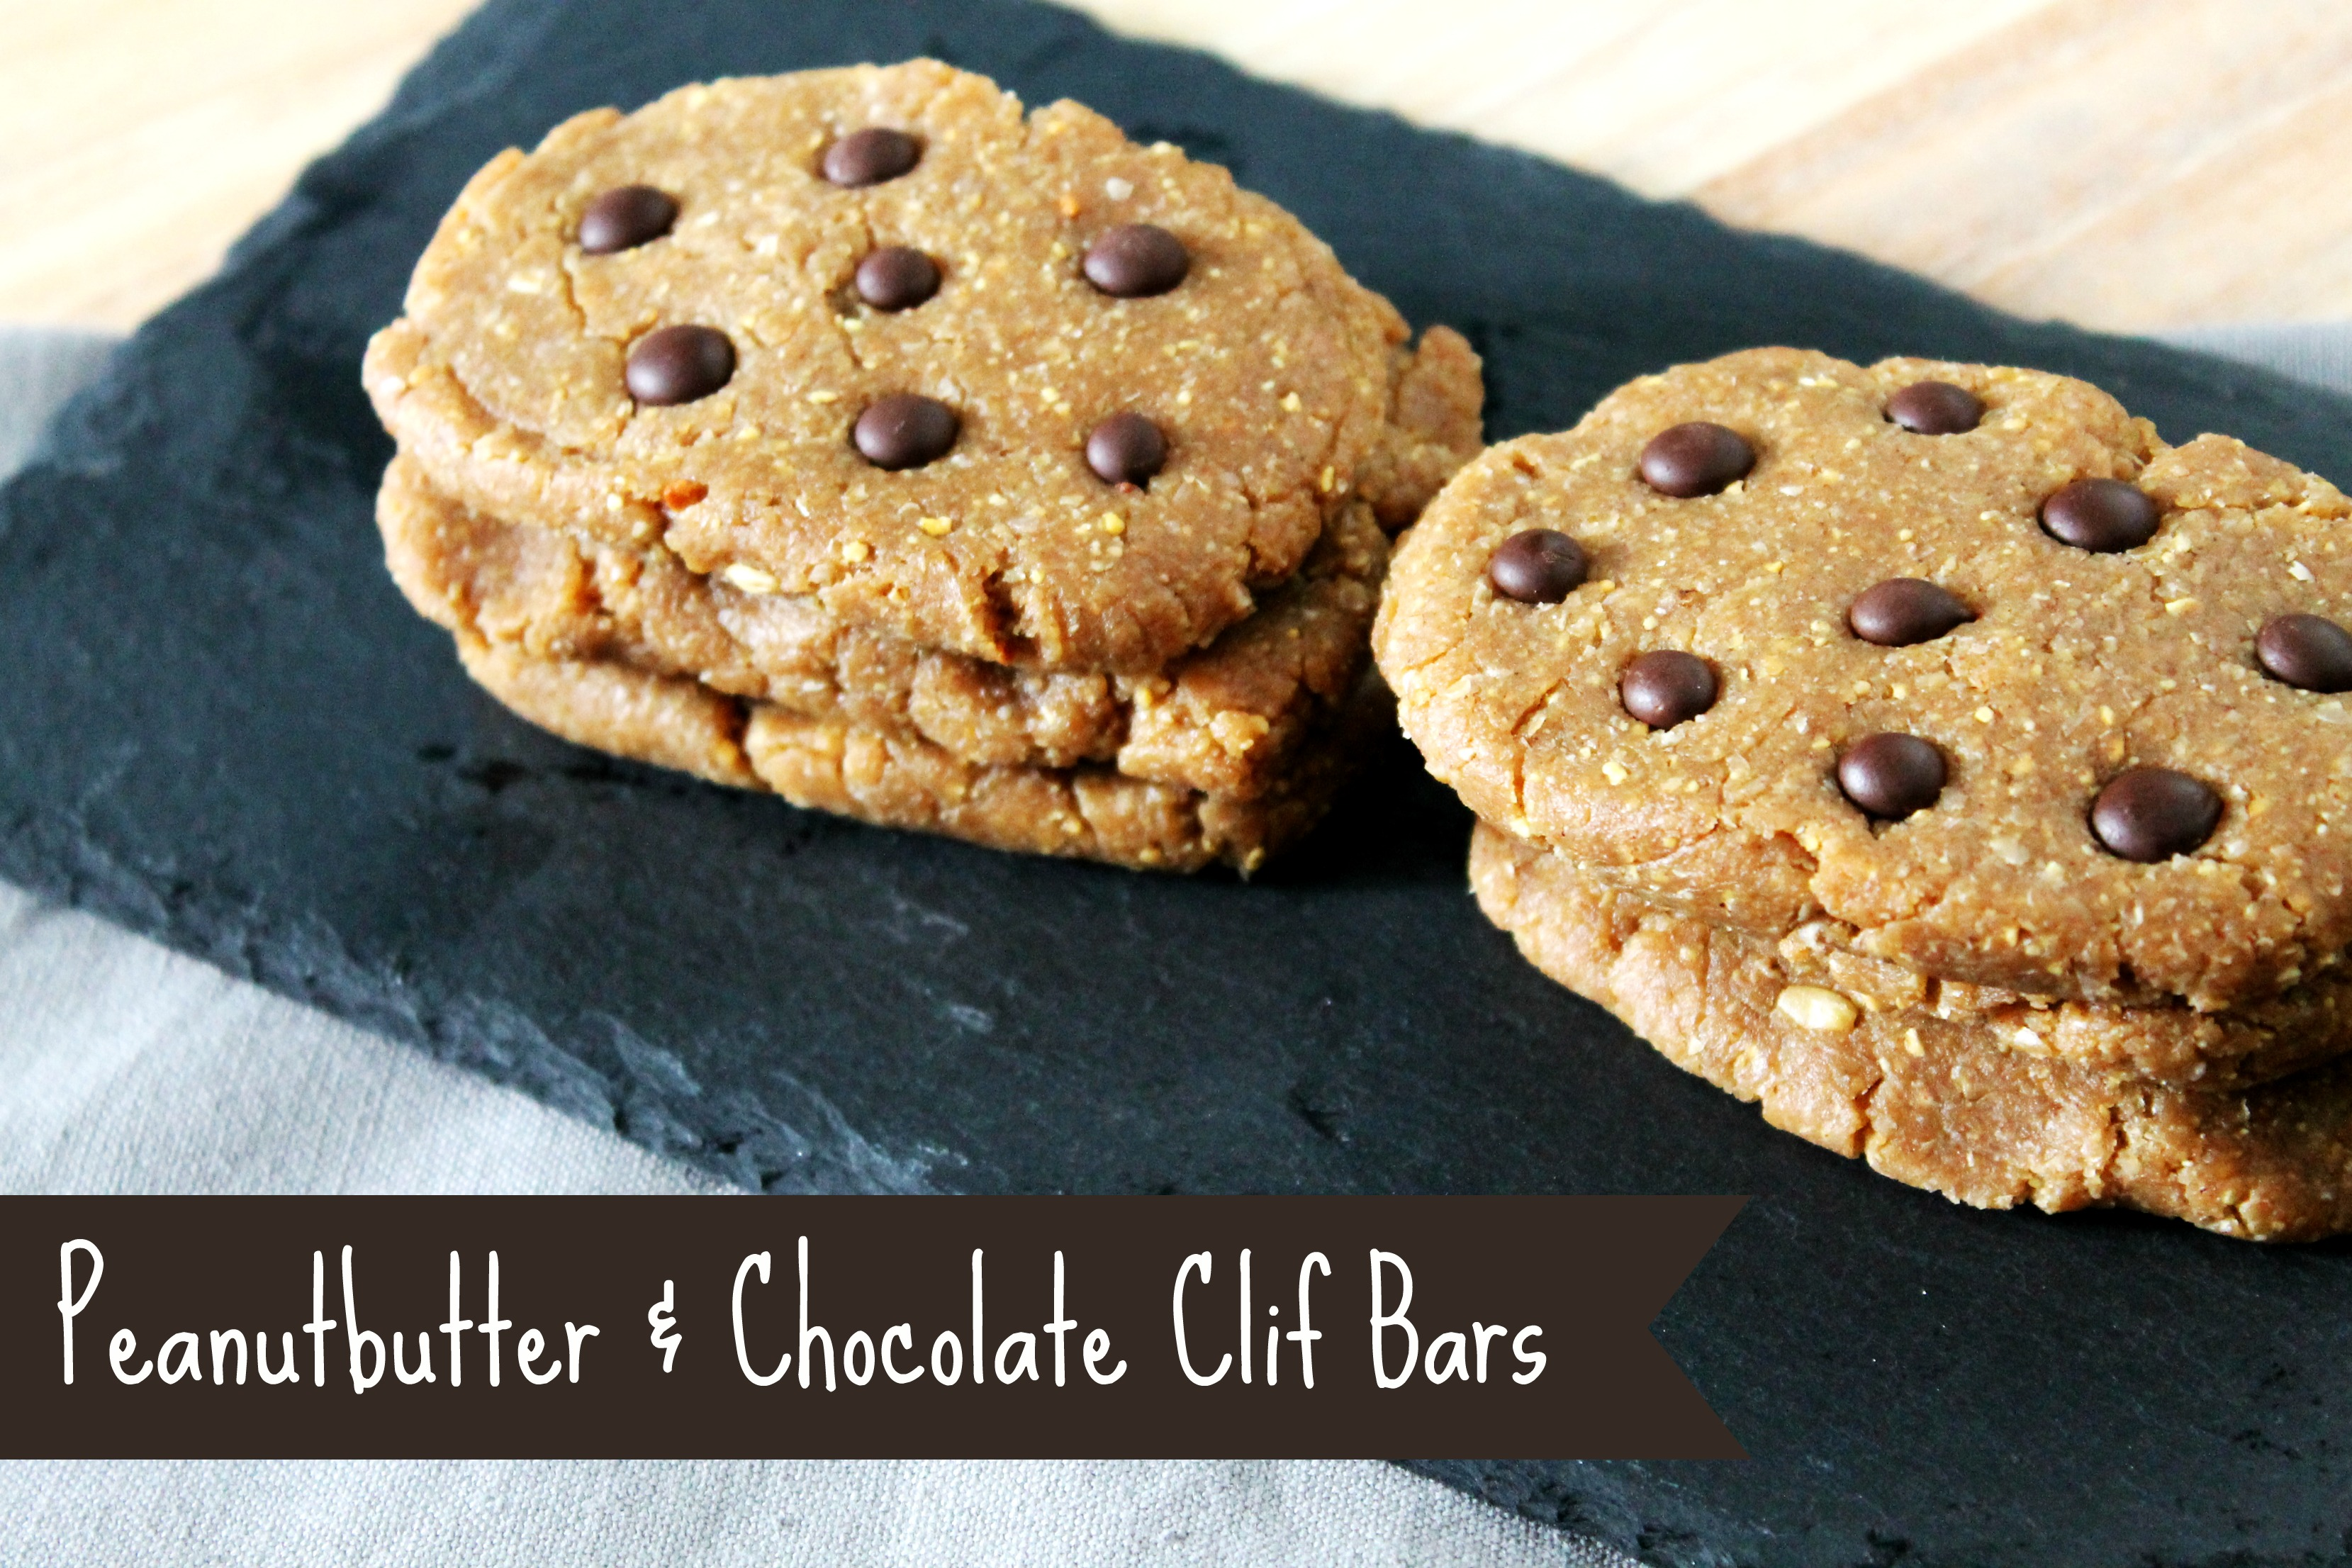 how to make homemade peanut butter clif bars